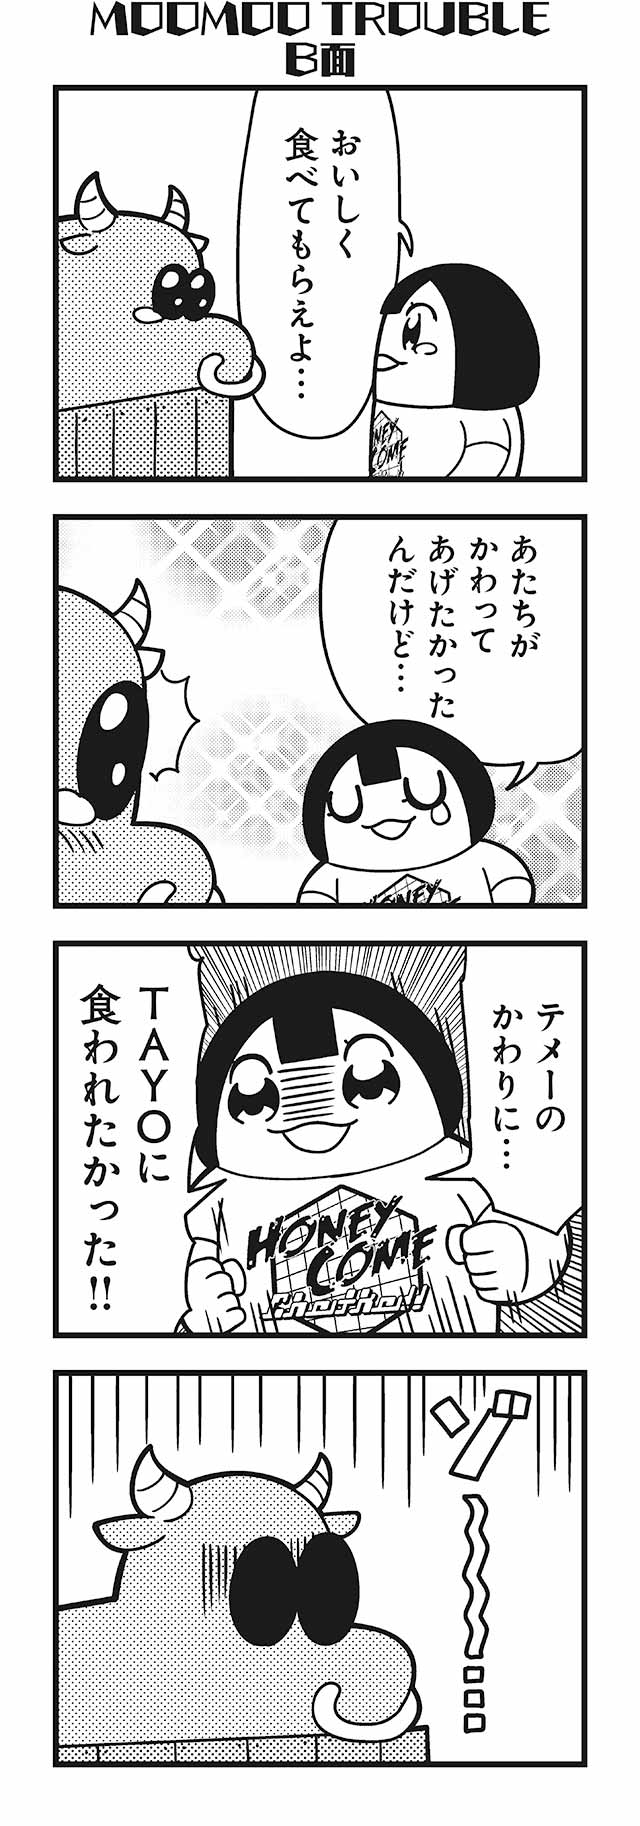 1girl 4koma :3 bangs bkub blank_eyes blunt_bangs blush calimero_(bkub) clenched_hands comic cow cow_horns crying crying_with_eyes_open emphasis_lines greyscale halftone highres honey_come_chatka!! horns monochrome nose_ring open_mouth shaded_face shirt short_hair shouting simple_background single_tear sparkling_eyes speech_bubble speed_lines surprised talking tears translation_request two-tone_background